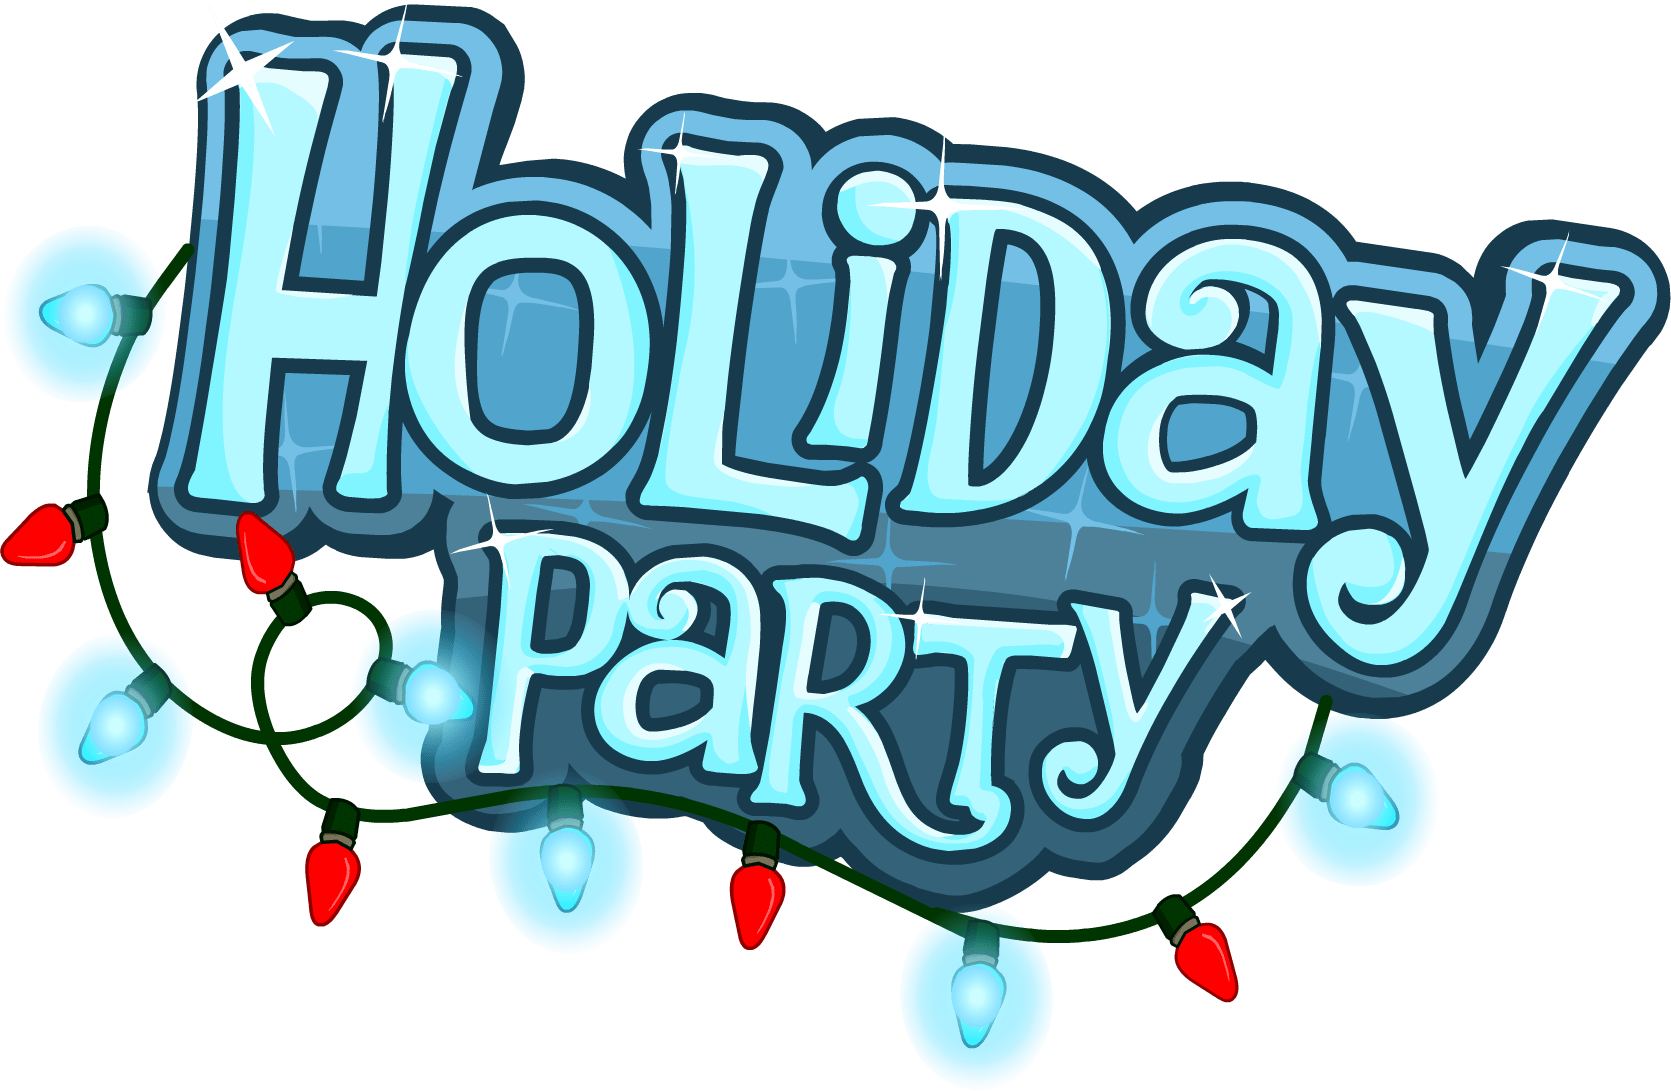 Winter holiday party clipart 3 » Clipart Portal.